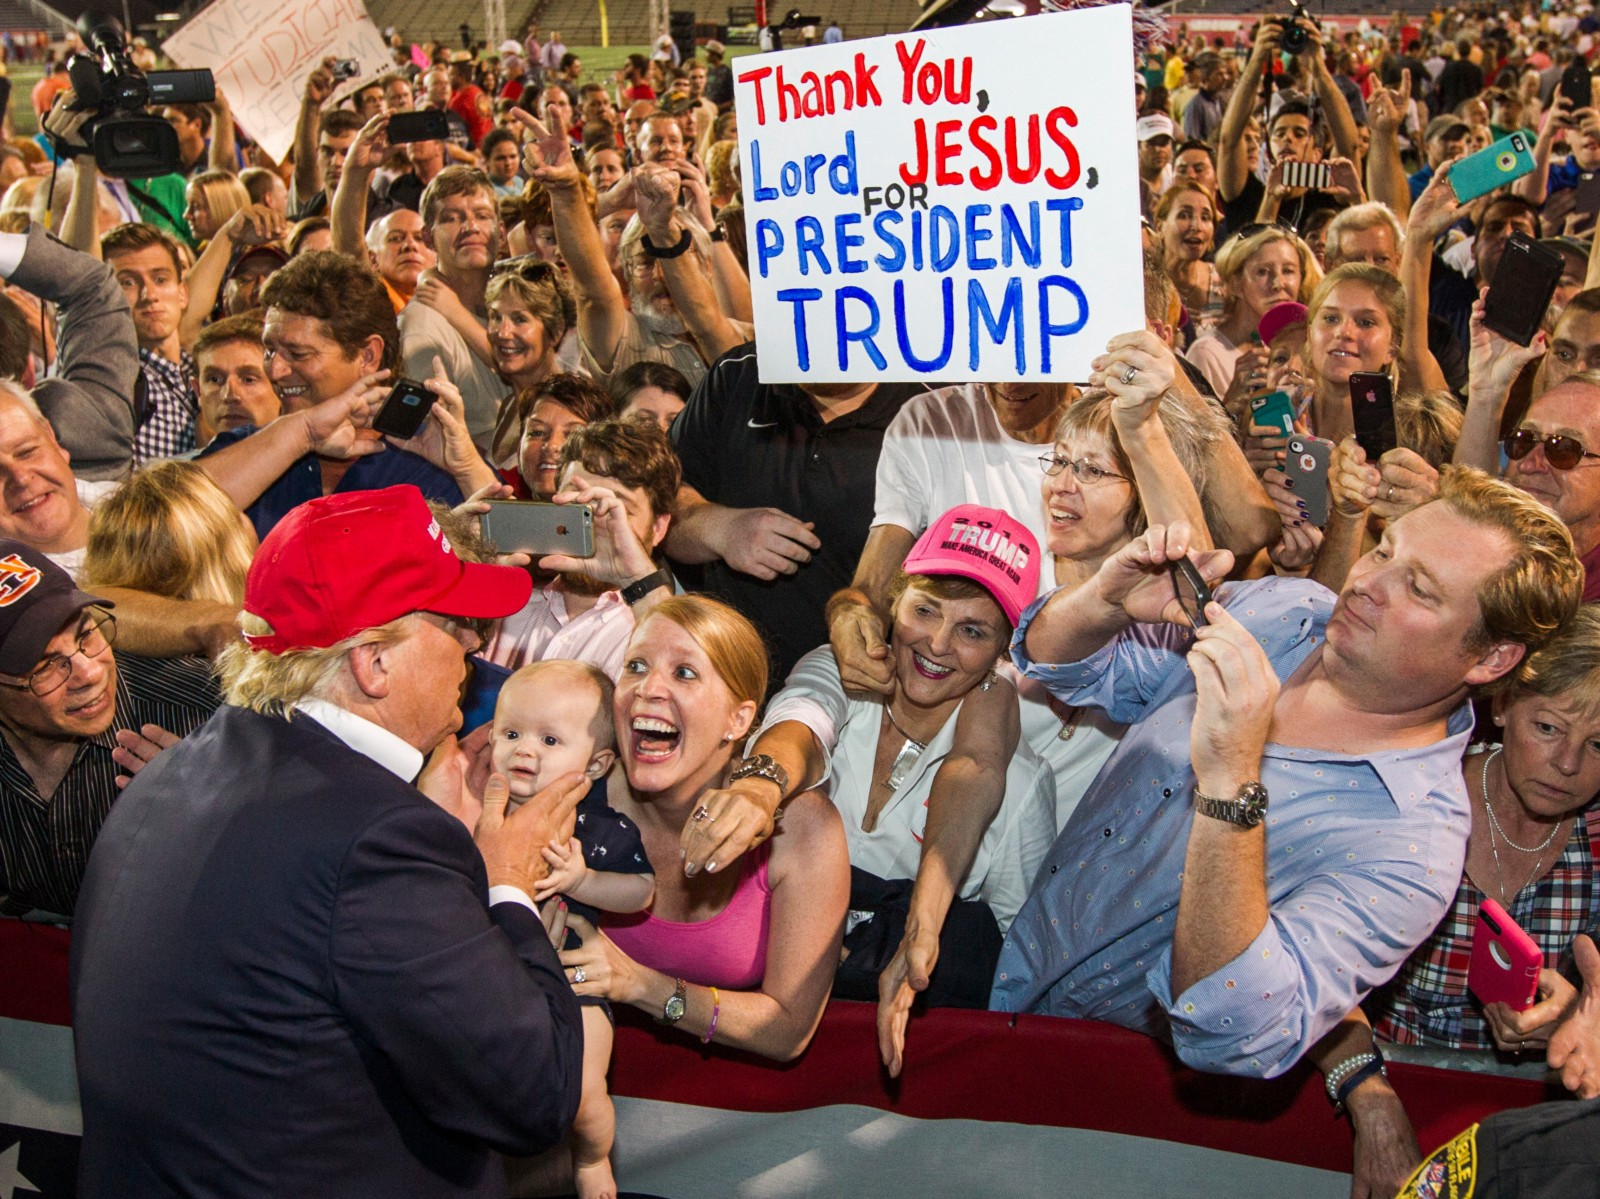 america should think wisely before voting for donald trump Mr trump's tone and strategy in courting the black vote is distinctly different from that of previous republican presidential nominees, whose more formal outreach efforts had limited success.